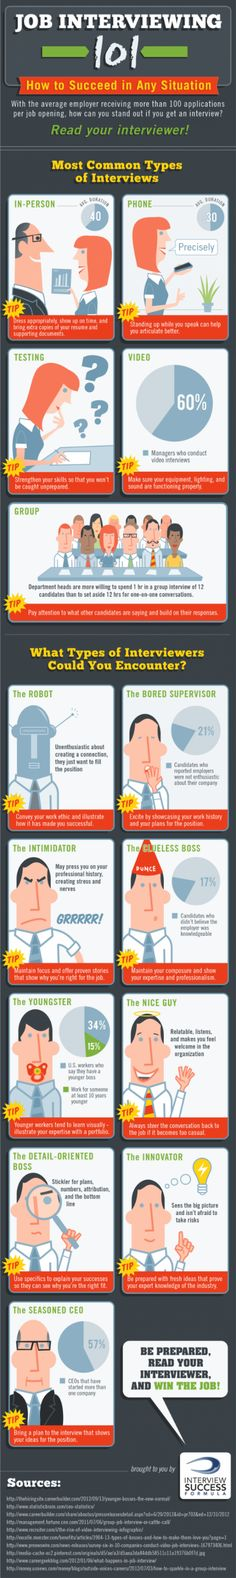 #Job #Interviewing 101 #infographic